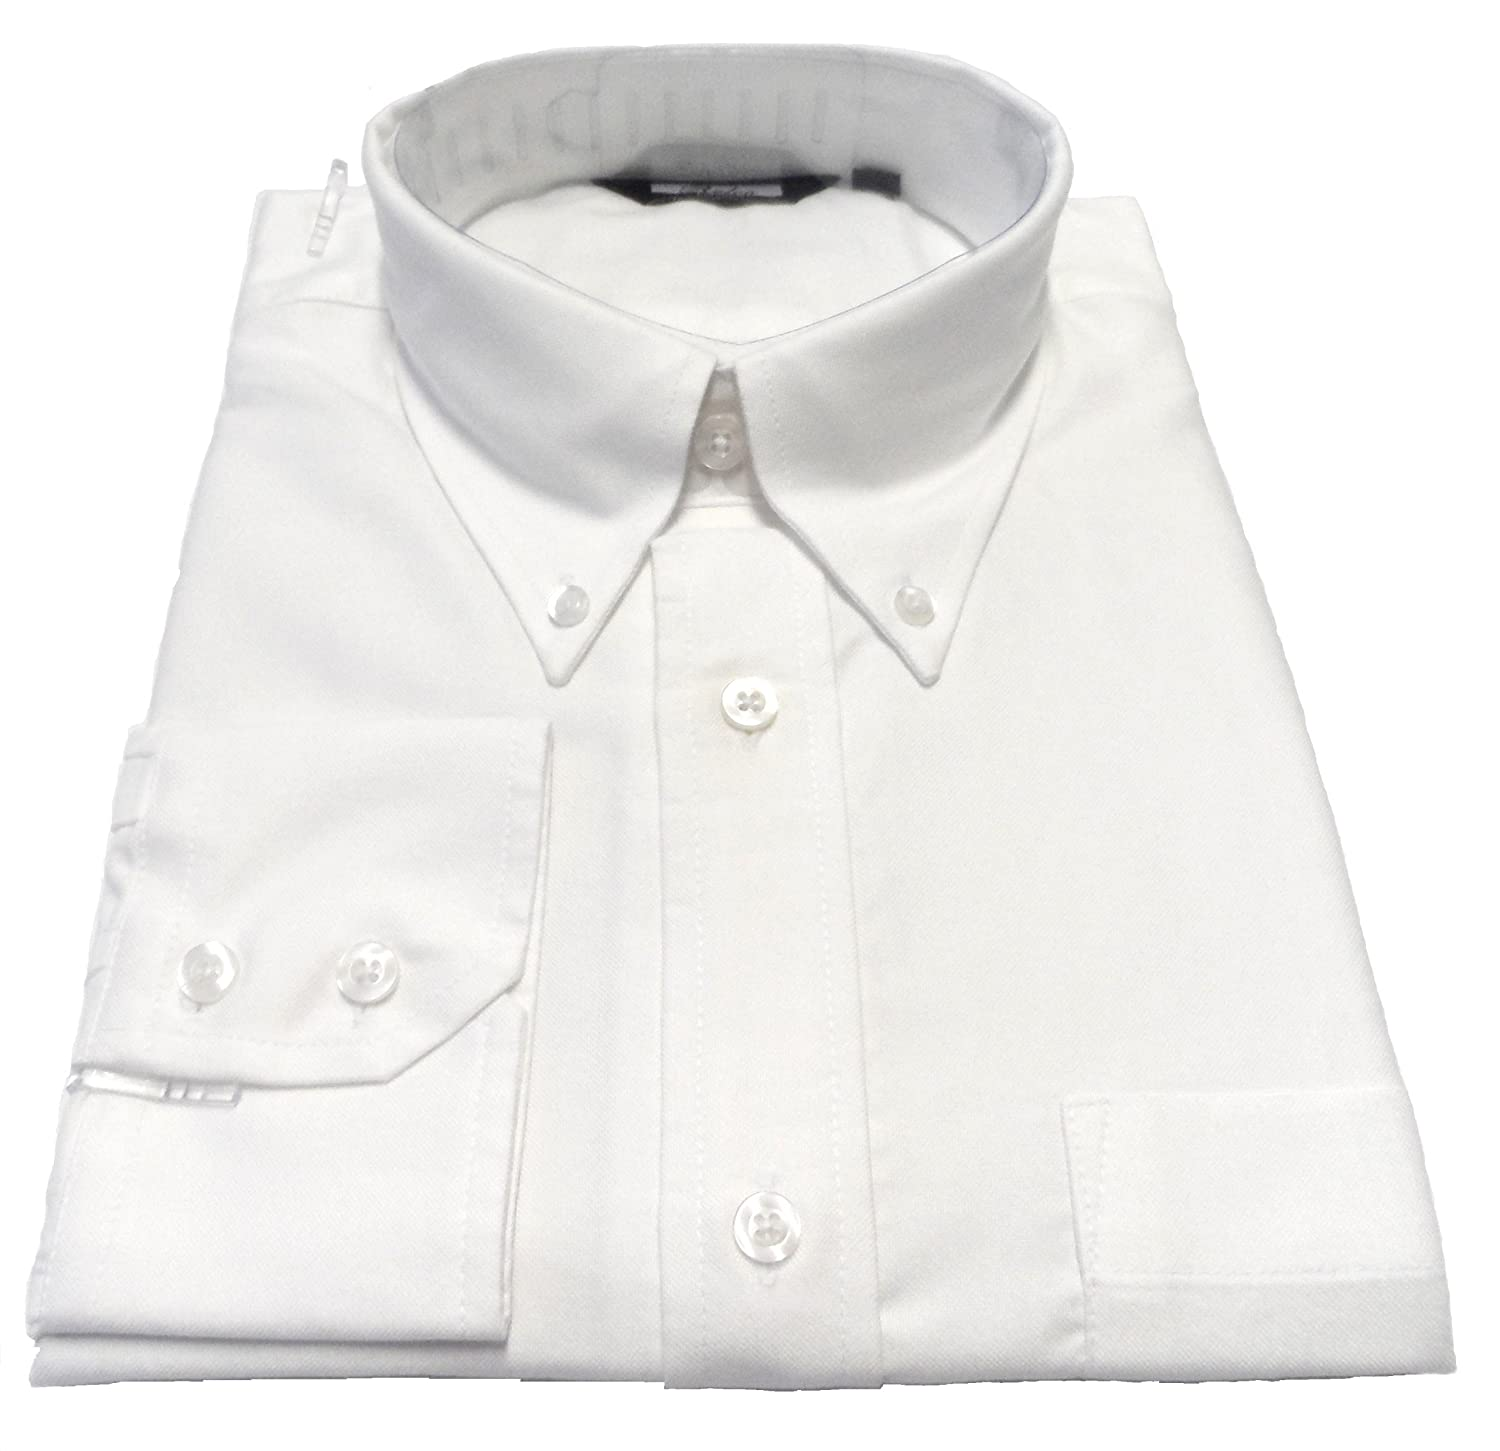 Mens Vintage Shirts – Retro Shirts Relco White Oxford Long Sleeved Vintage/Retro Mod Button Down Shirts £31.99 AT vintagedancer.com